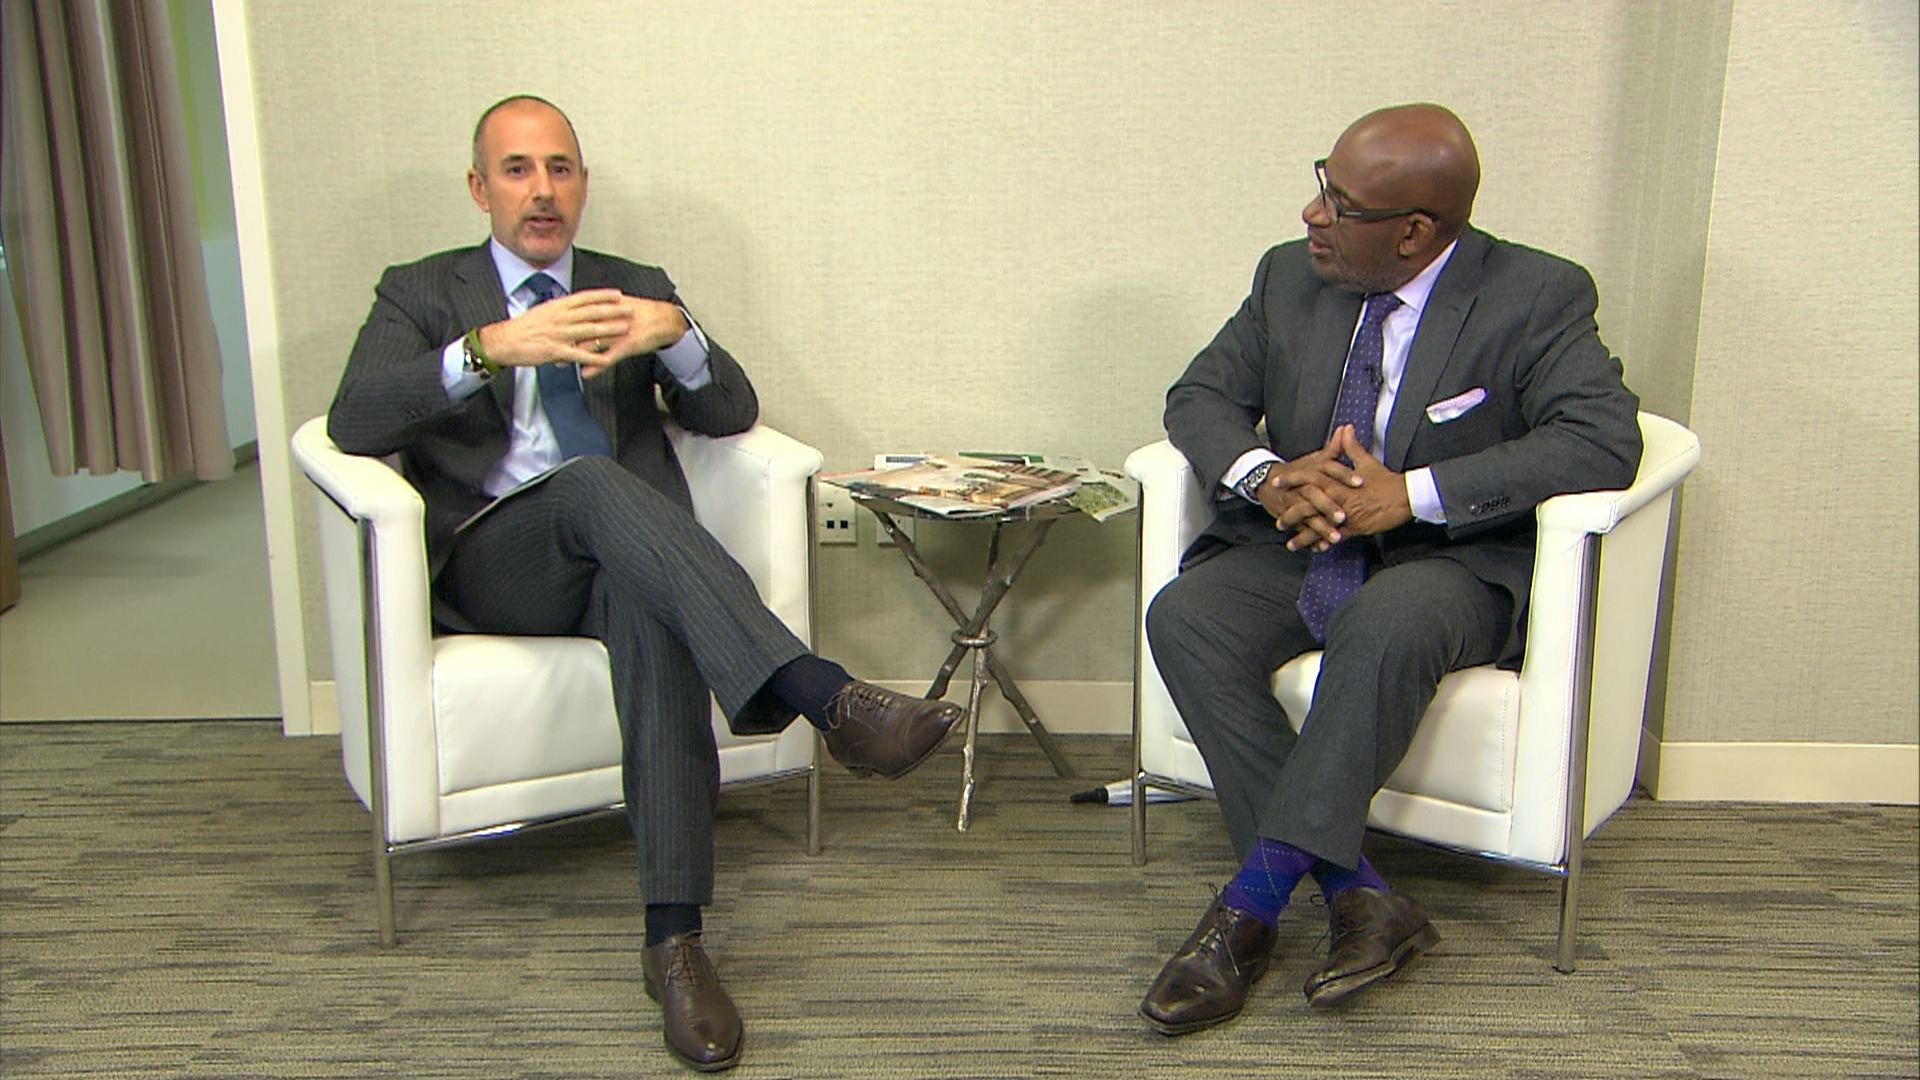 Matt Lauer, Al Roker have prostate exams live on